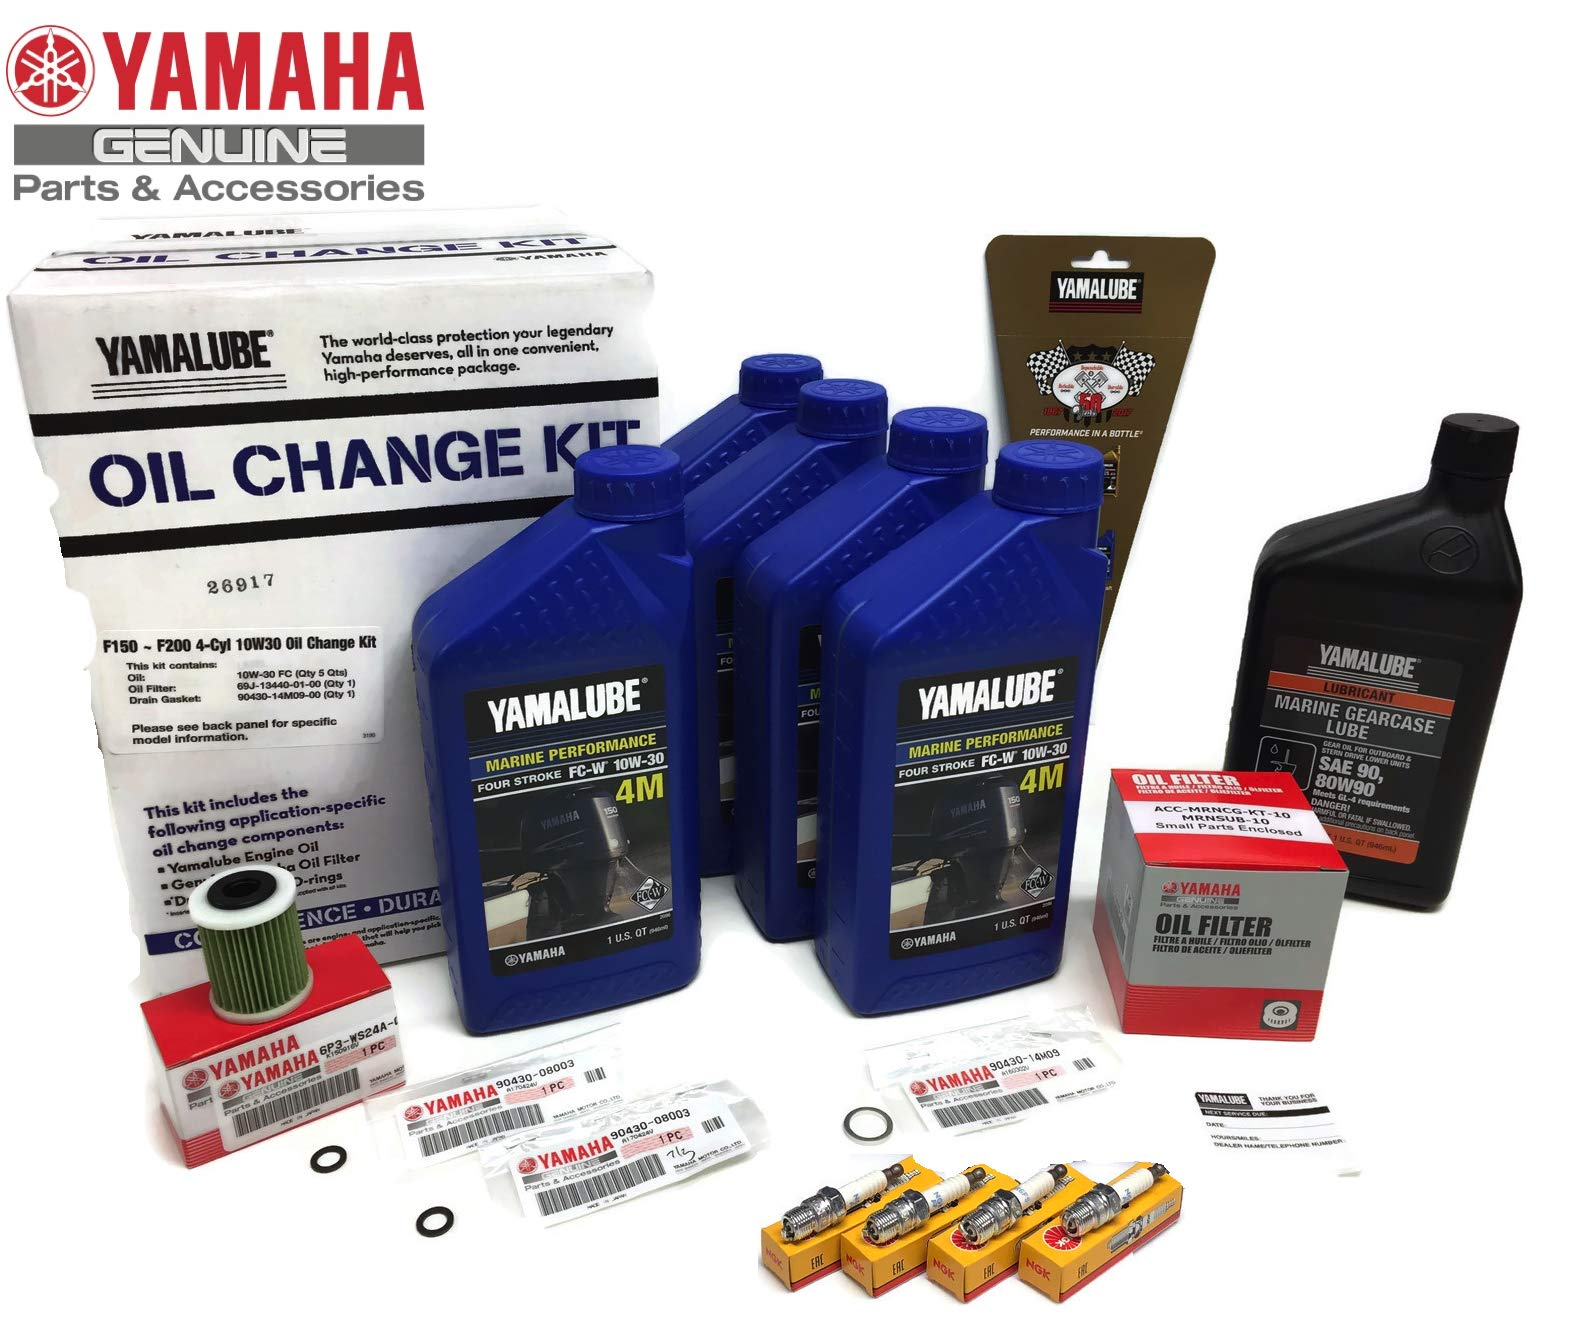 YAMAHA 2006+ F150 F150B Outboard Oil Change 10W30 FC 4M Lower Unit Gear Lube Drain Fill Gaskets NGK Spark Plugs LFR5A-11 Primary Fuel Filter Maintenance Kit by PWC Parts Co (Image #1)